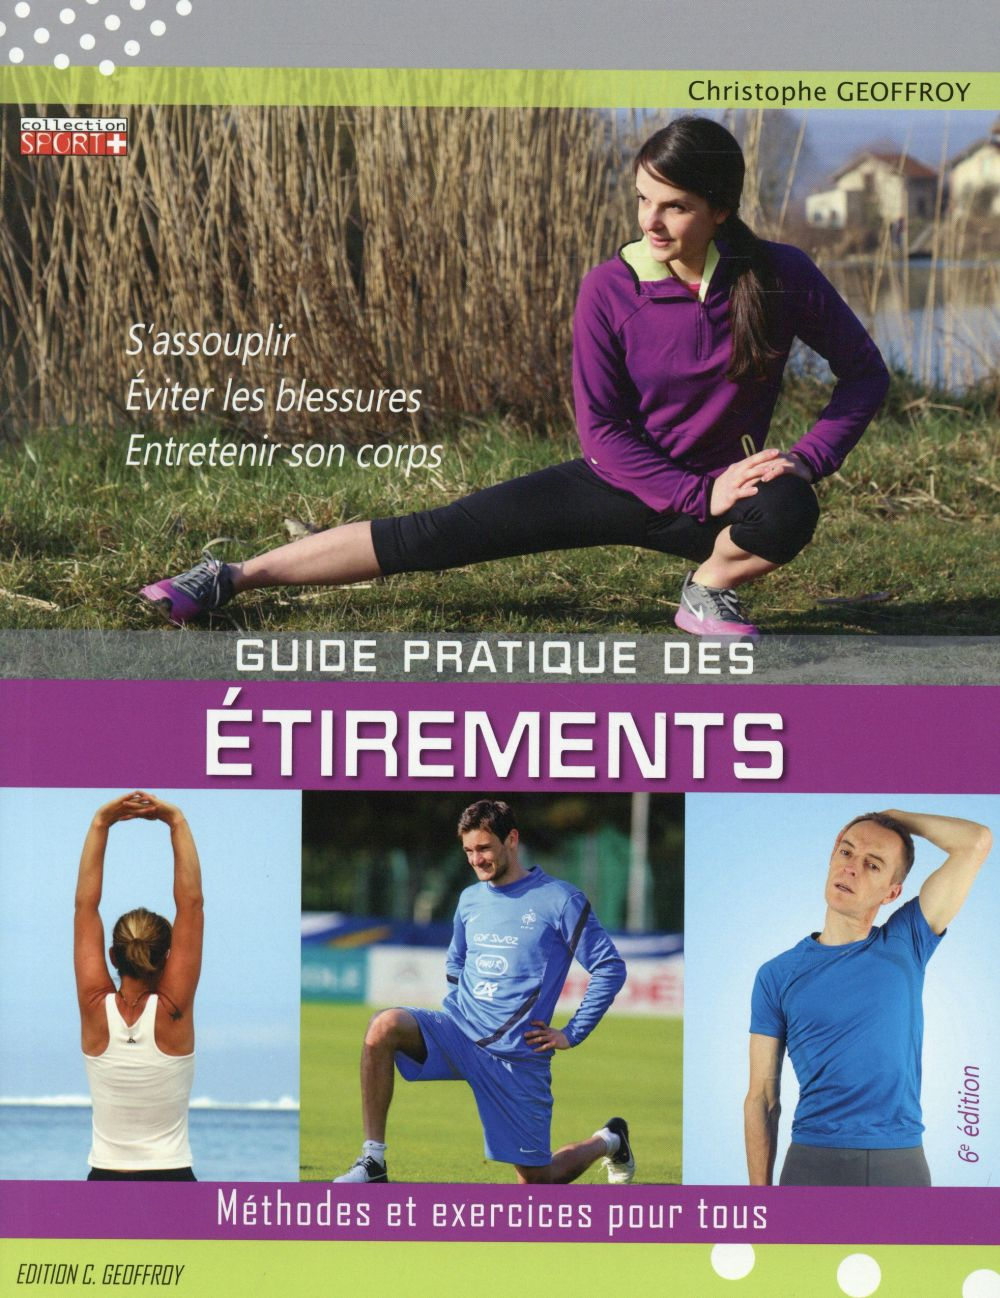 GUIDE PRATIQUE DES ETIREMENTS NED